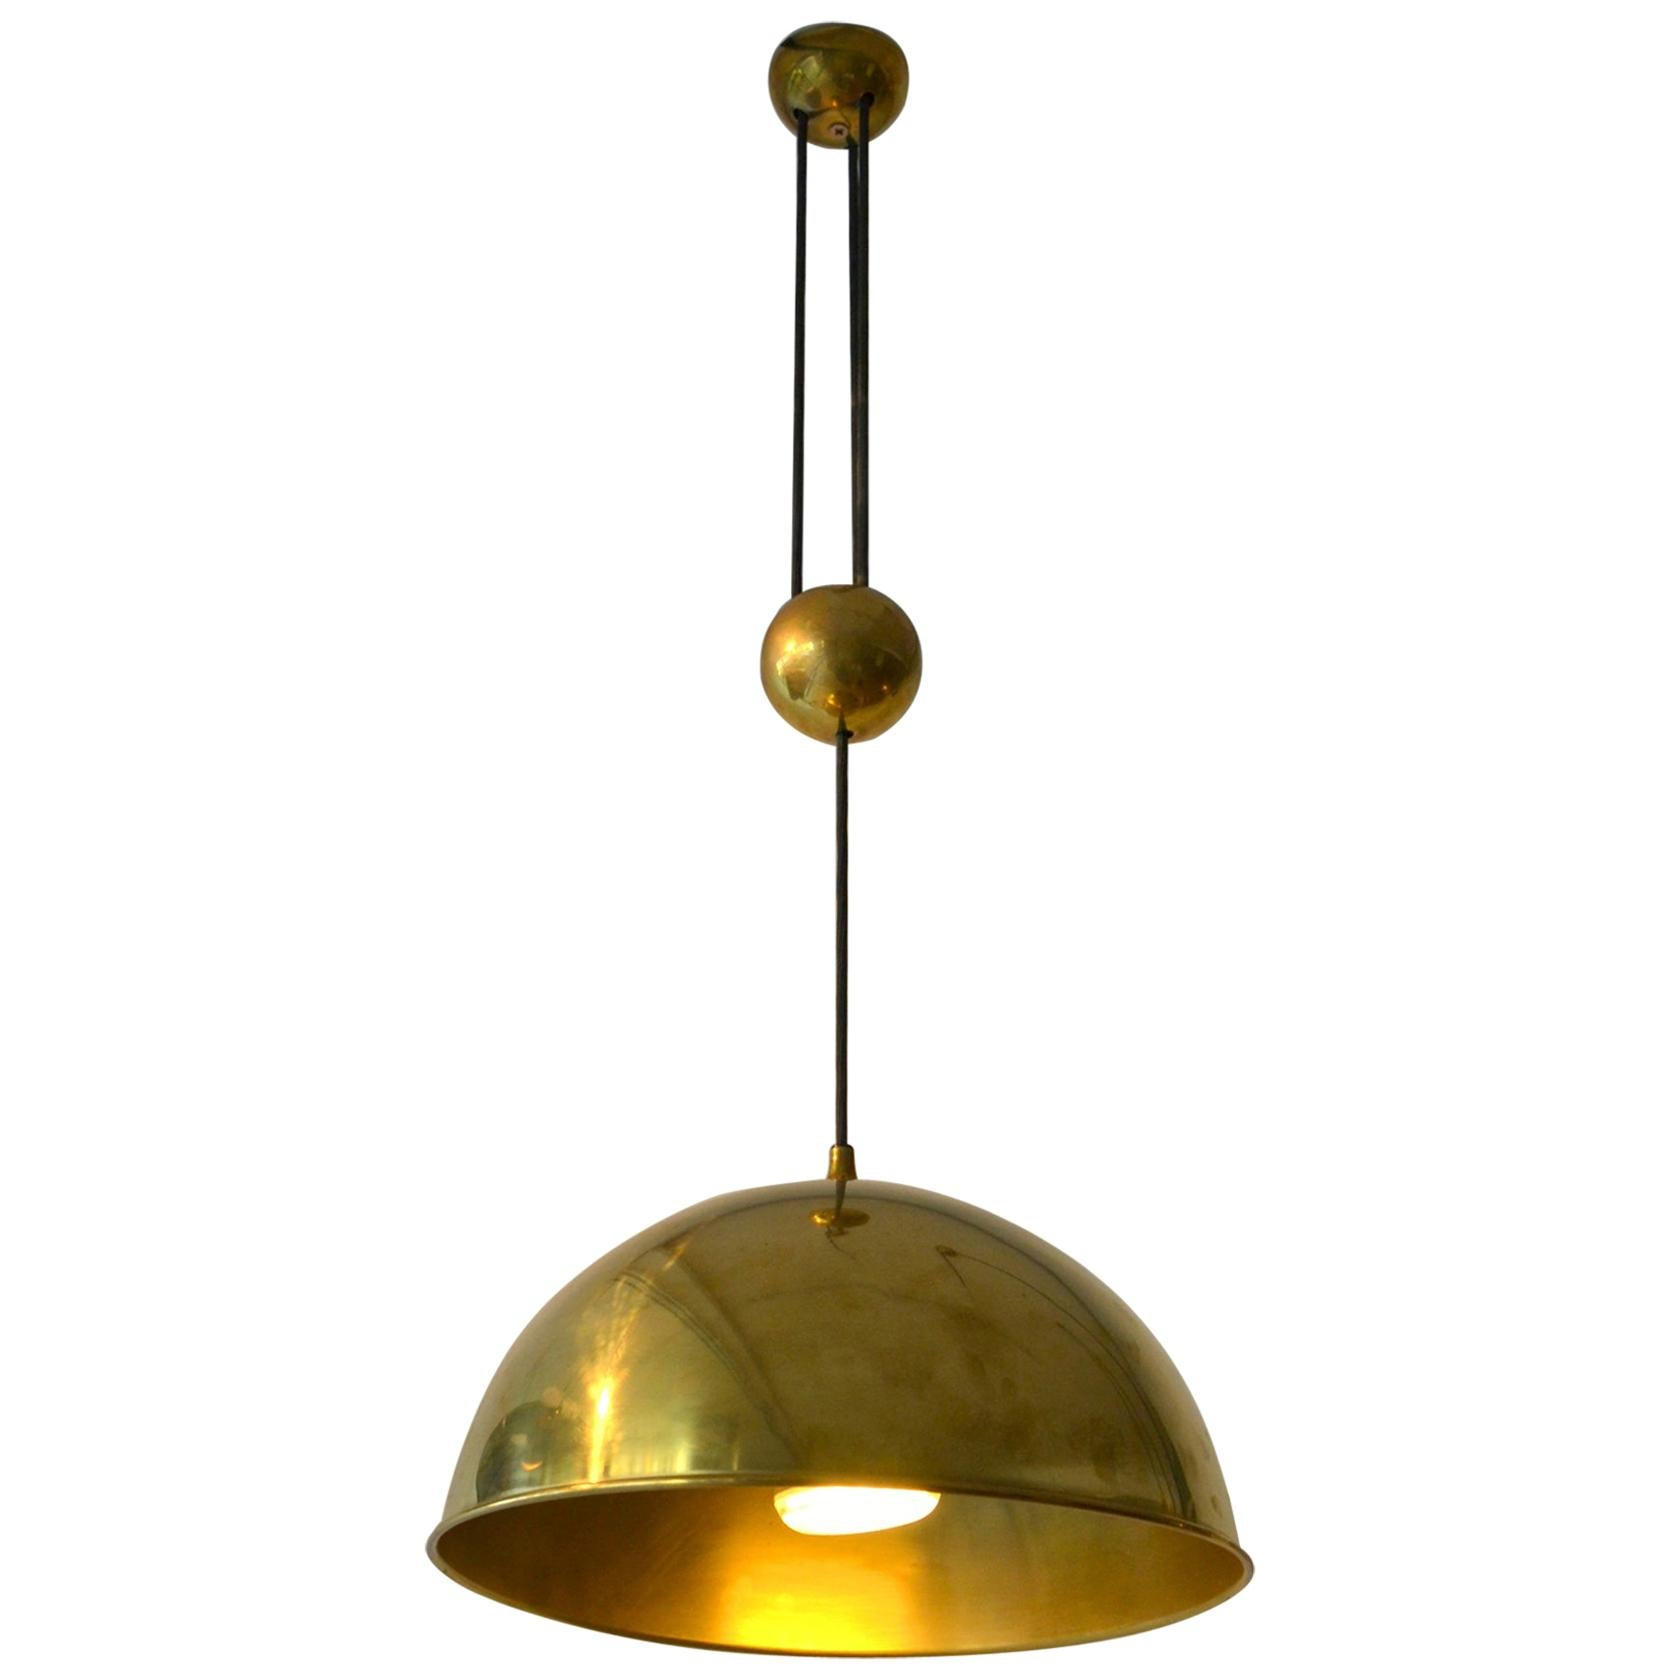 Counterbalance Brass Pendant 'Posa' Centre Weight by Florian Schulz